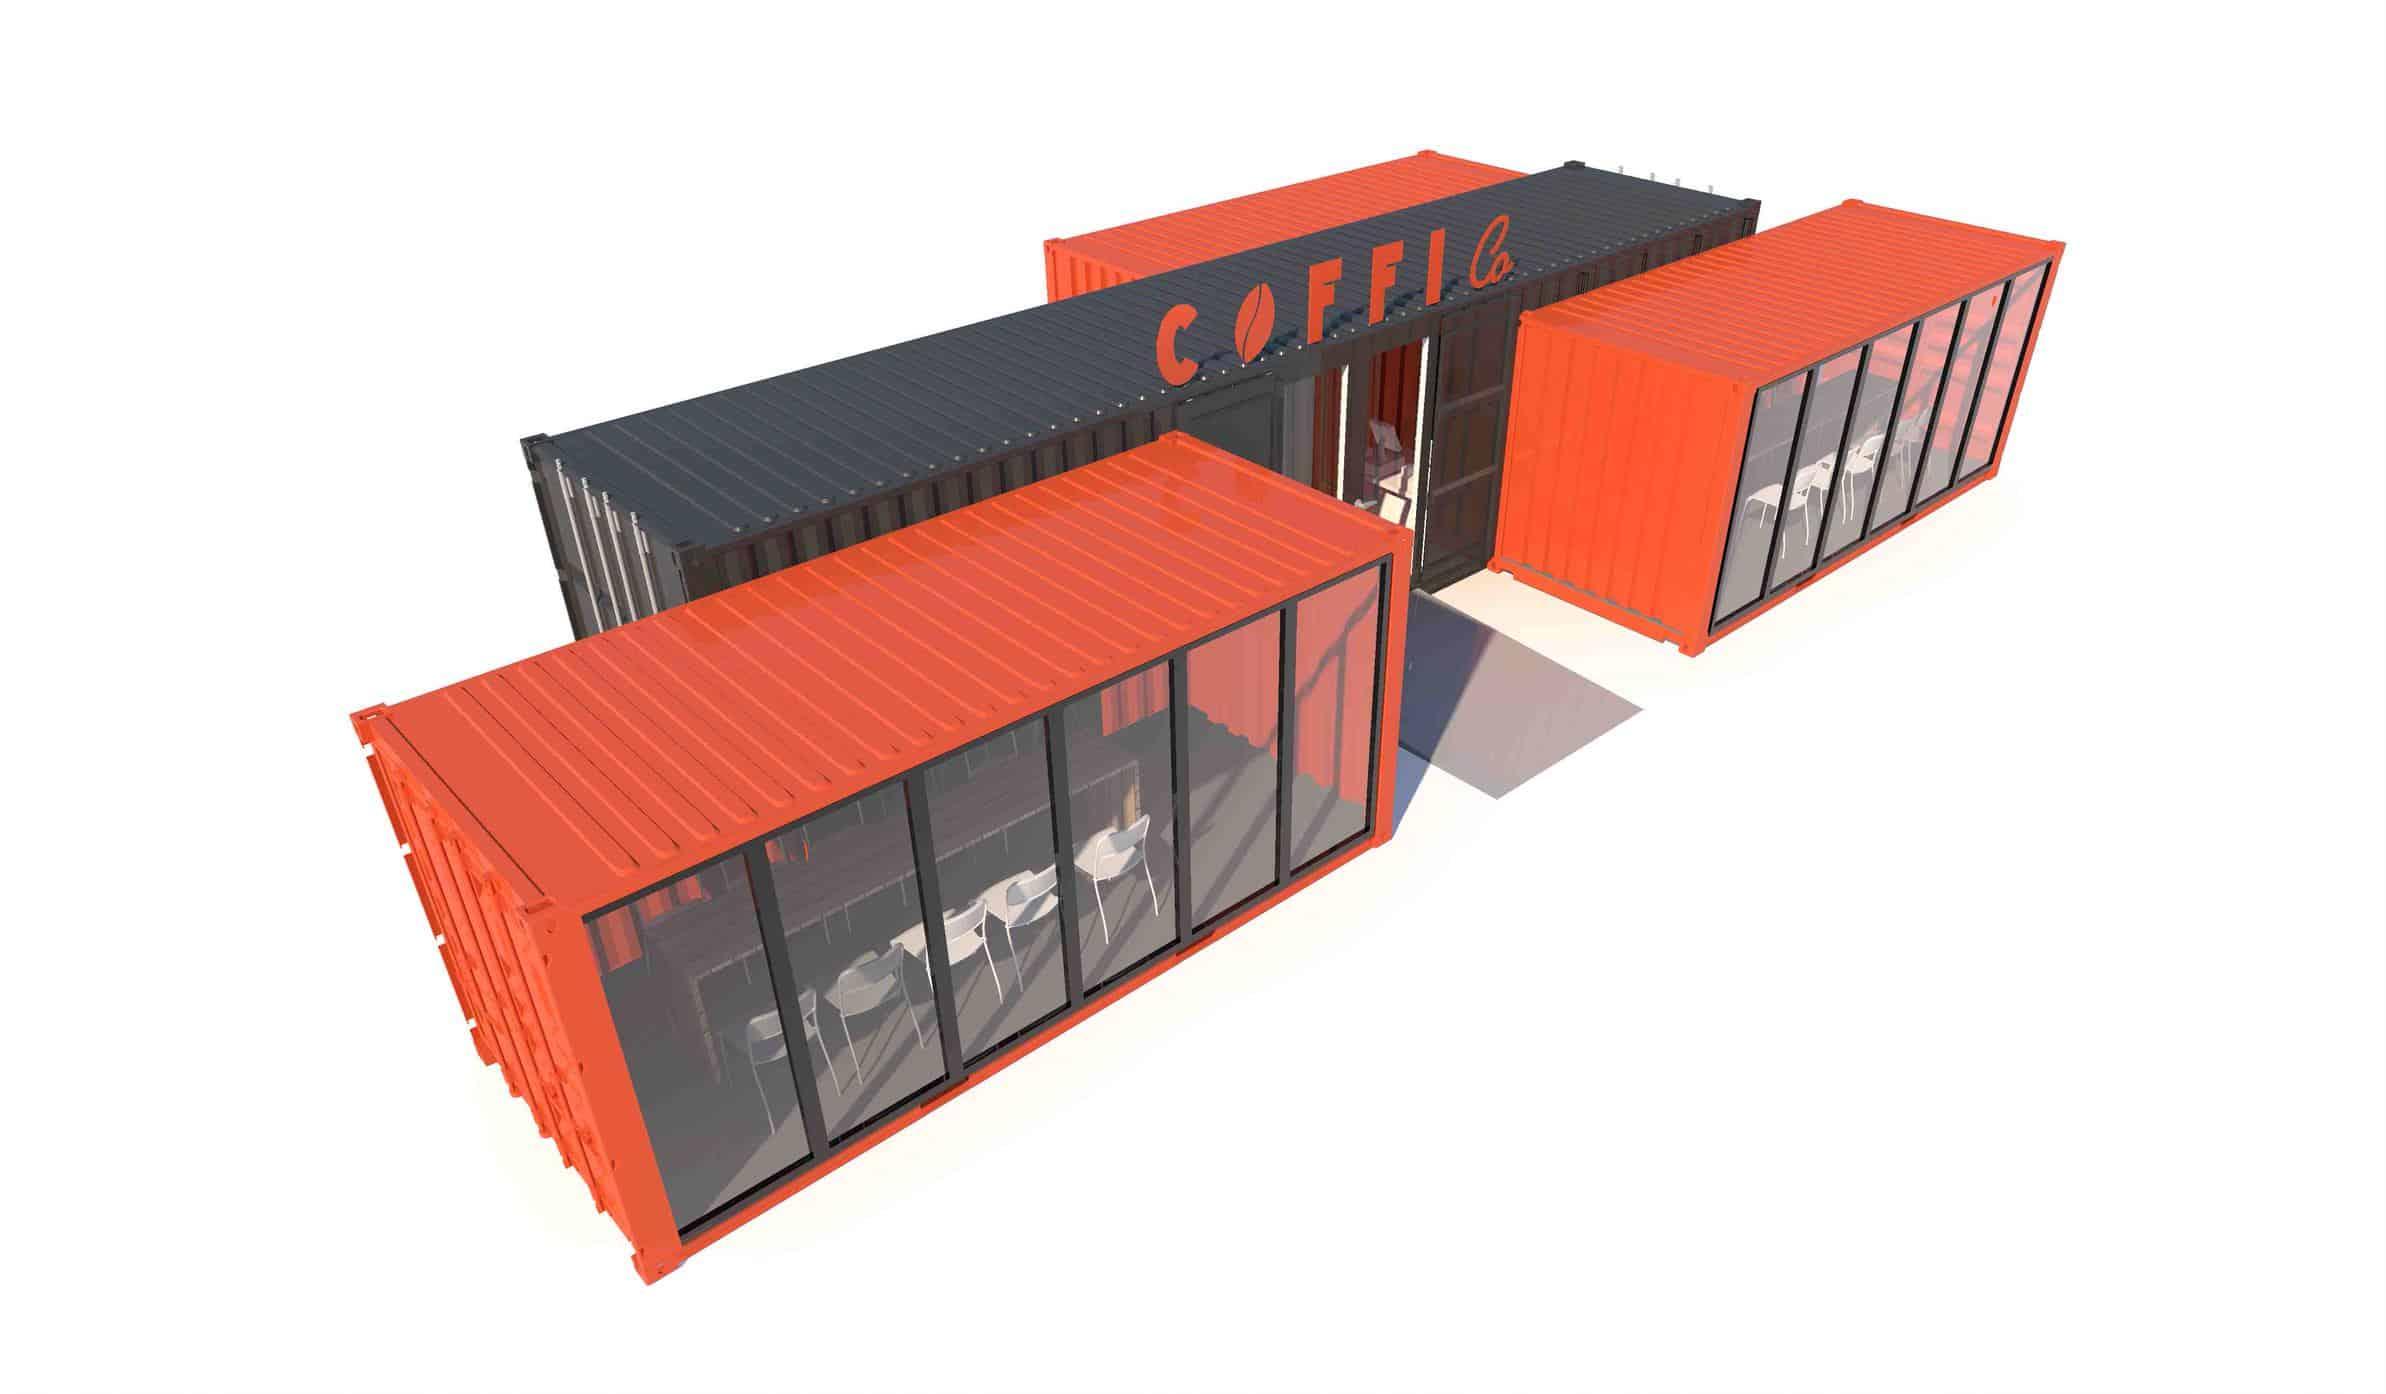 Concept design of a shipping container coffee shop